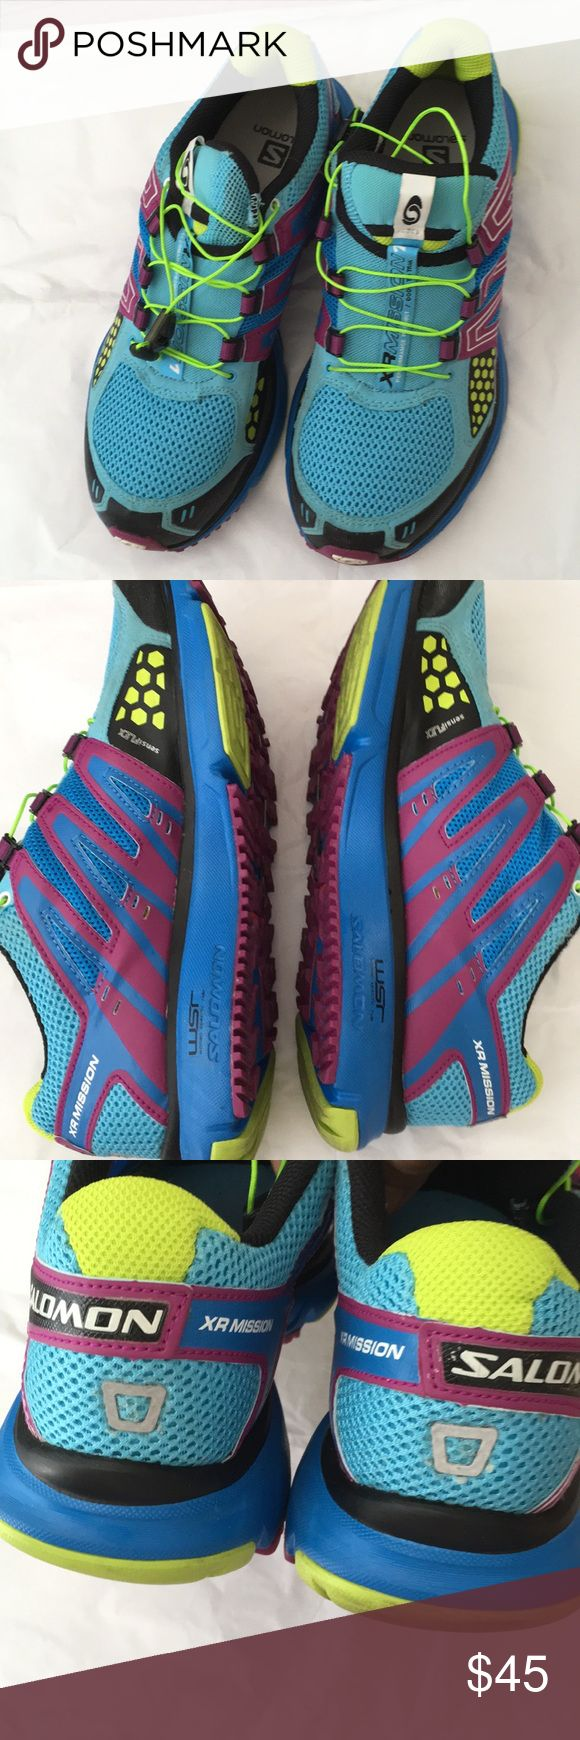 Salomón shoes size 9 excellent used condition Salomón shoes excellent condition Size 9 Salomon Shoes Athletic Shoes